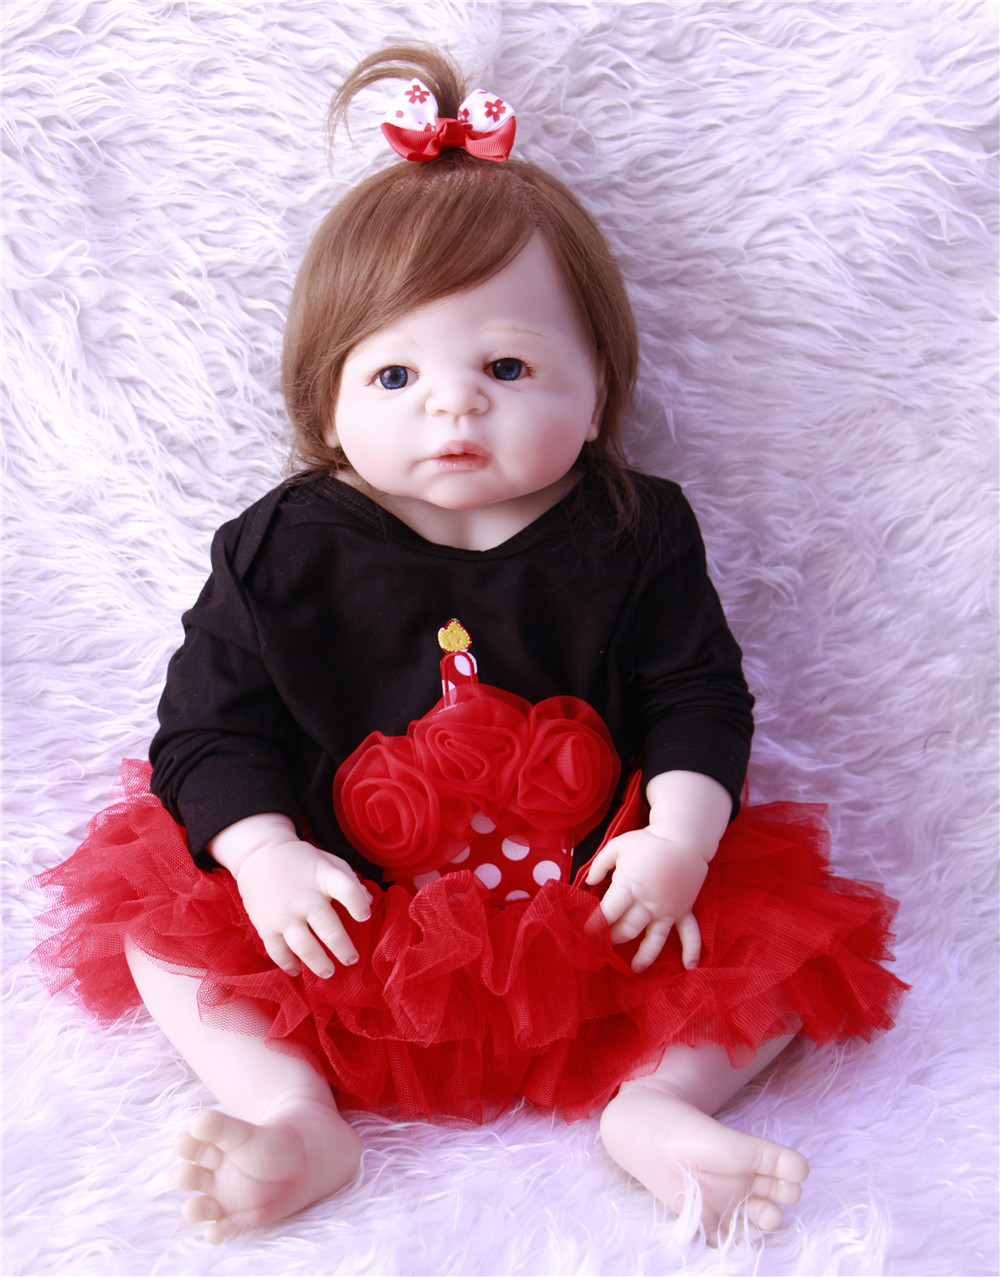 NPK 22inches55cm bebes reborn silicone reborn baby dolls com corpo de silicone menina baby dolls kids birthday Christmas giftsNPK 22inches55cm bebes reborn silicone reborn baby dolls com corpo de silicone menina baby dolls kids birthday Christmas gifts